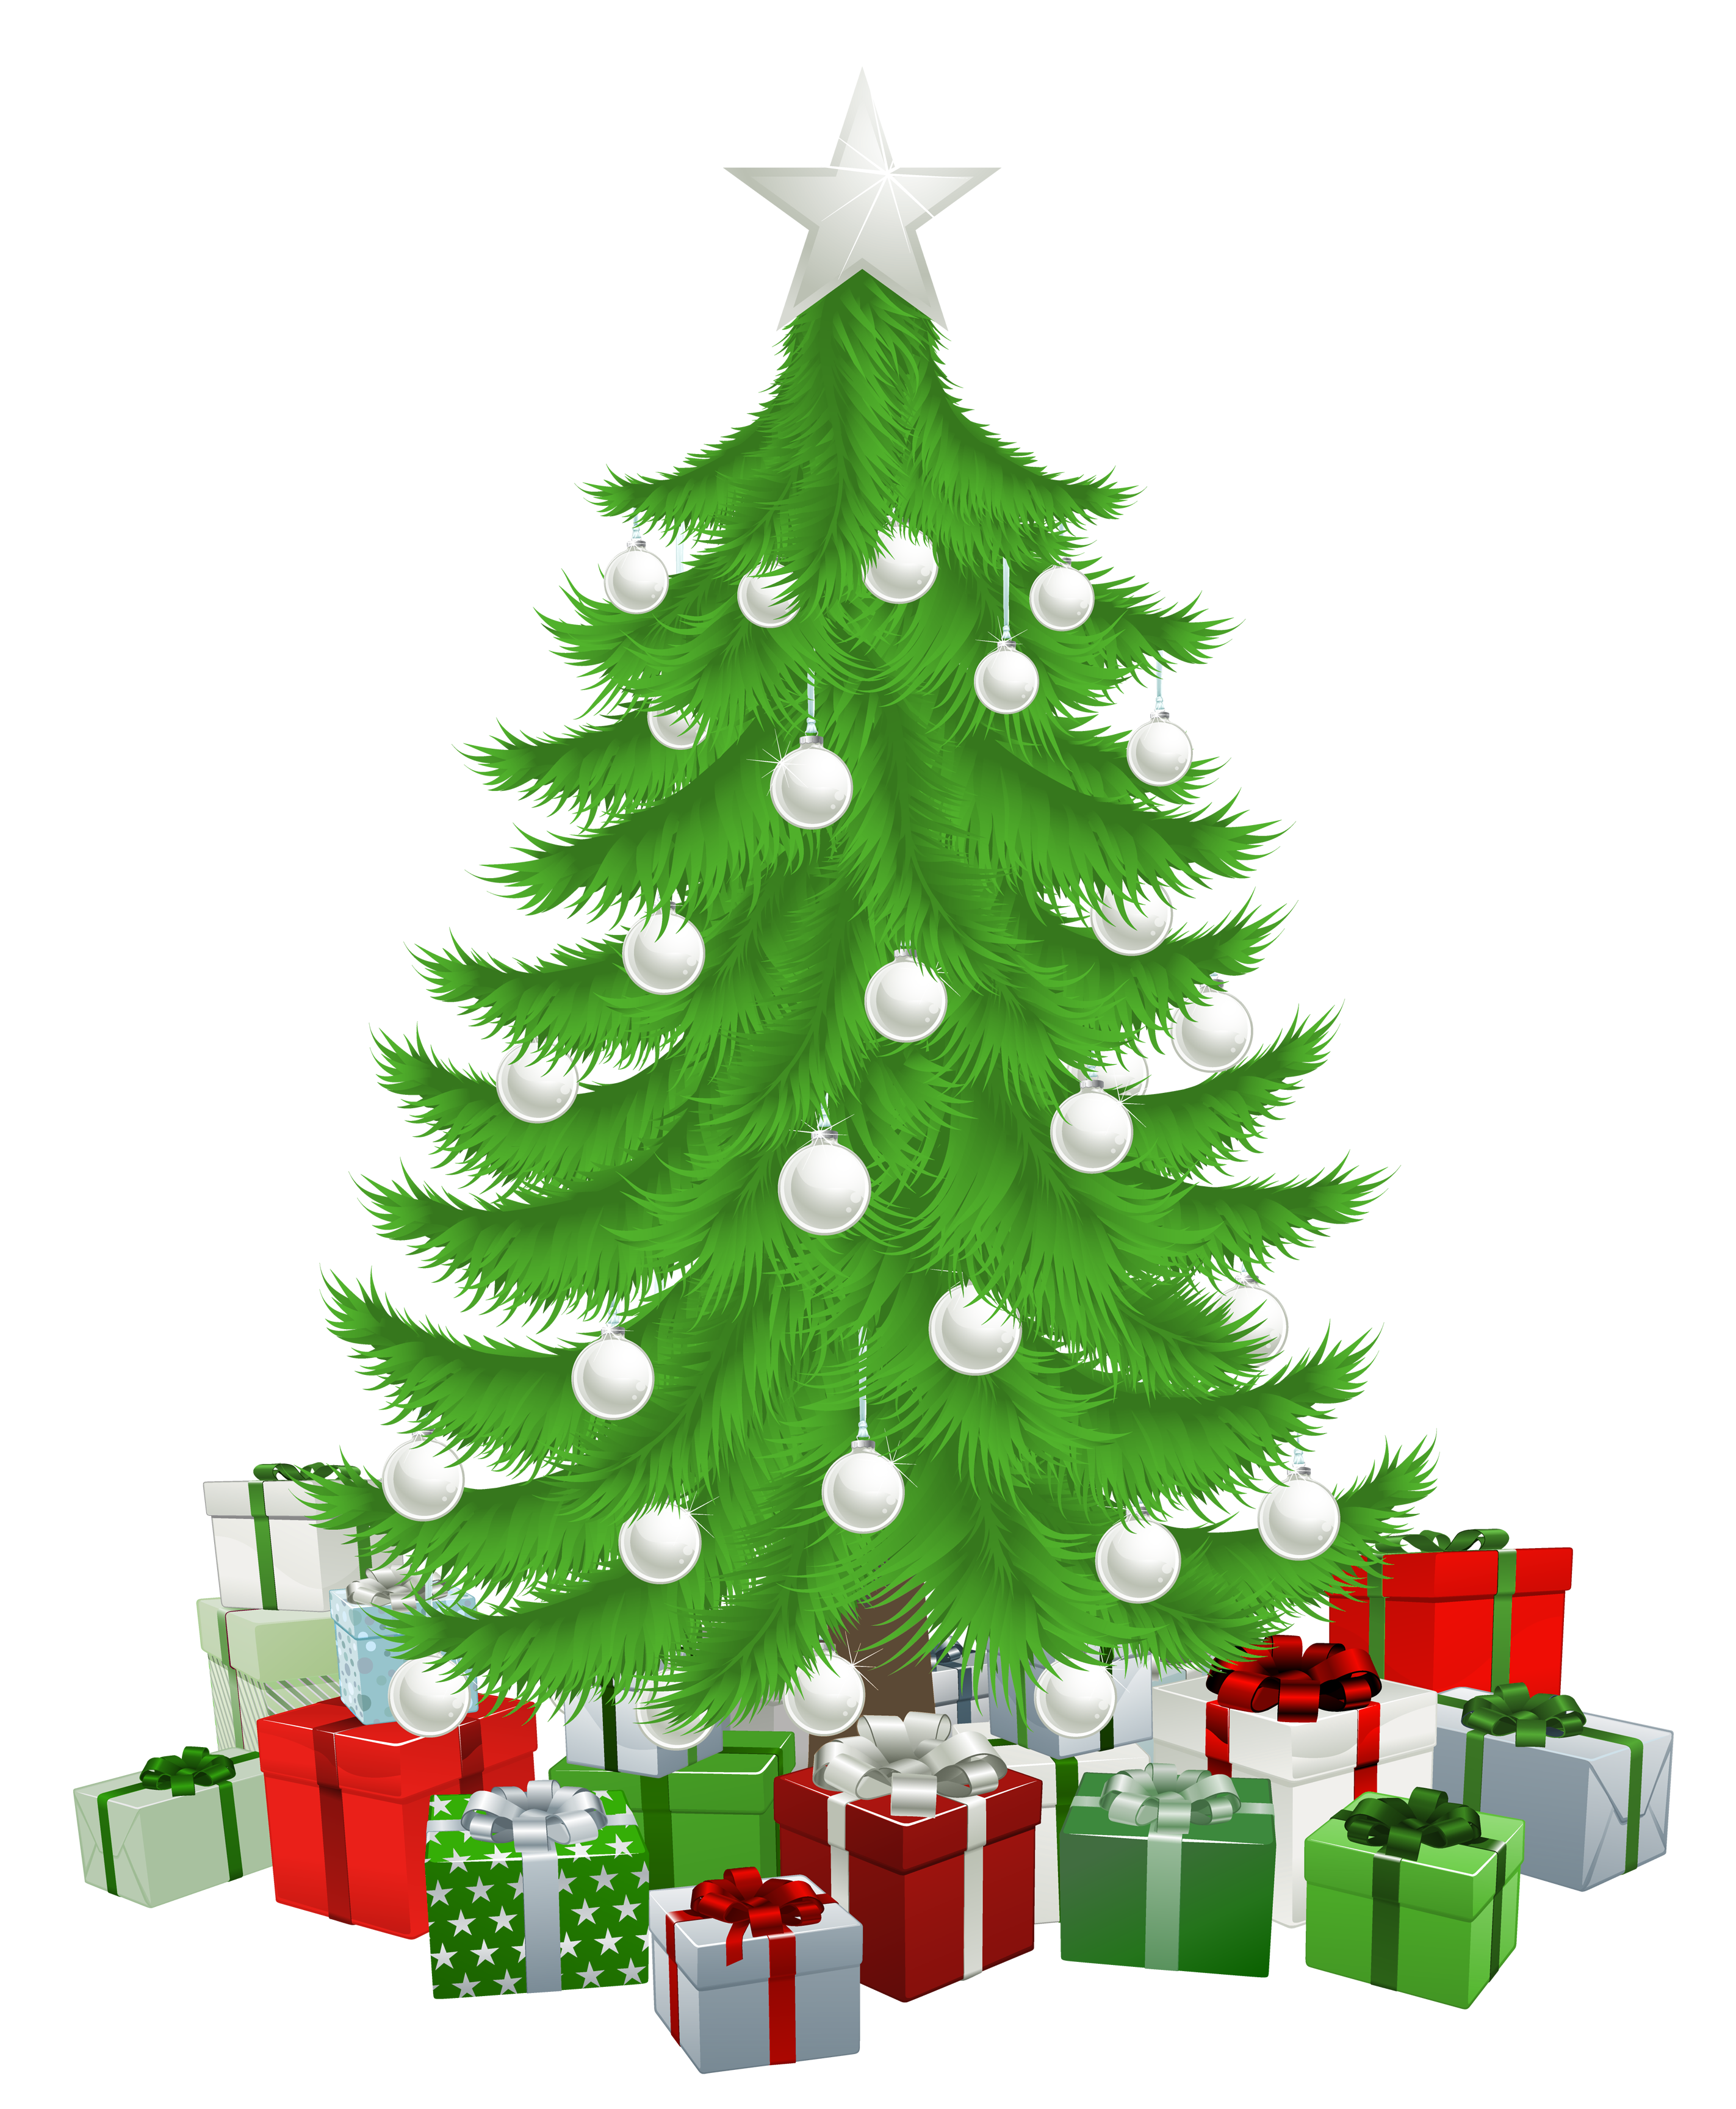 transparent christmas tree with presents clipart picture rh pinterest com Christmas Tree with Presents Under It christmas tree with presents and santa clip art